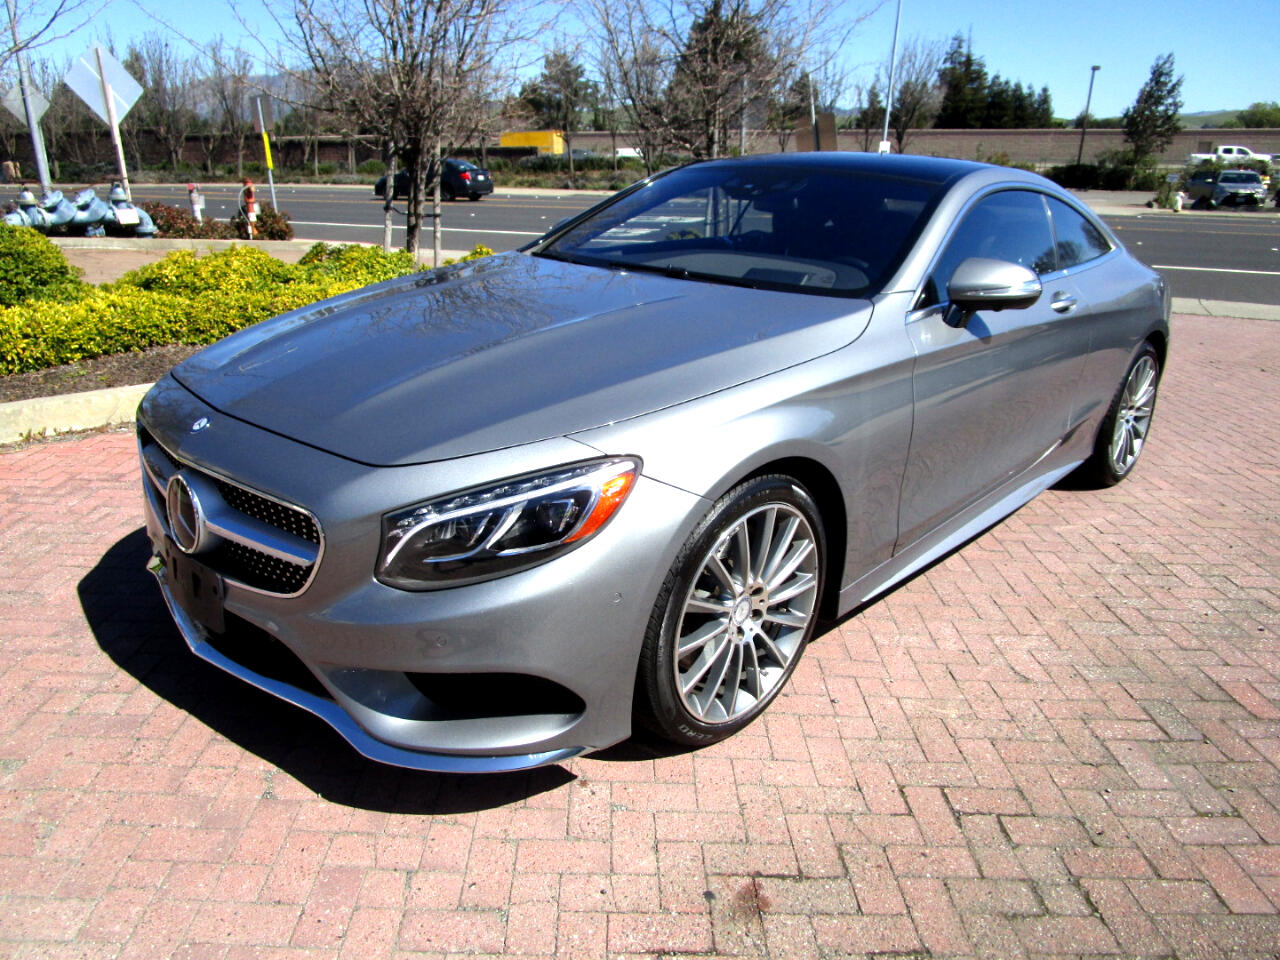 2015 Mercedes-Benz S550 4MATIC COUPE**AMG PKG*DRIVER ASSIST PLUS*DISTRIC P